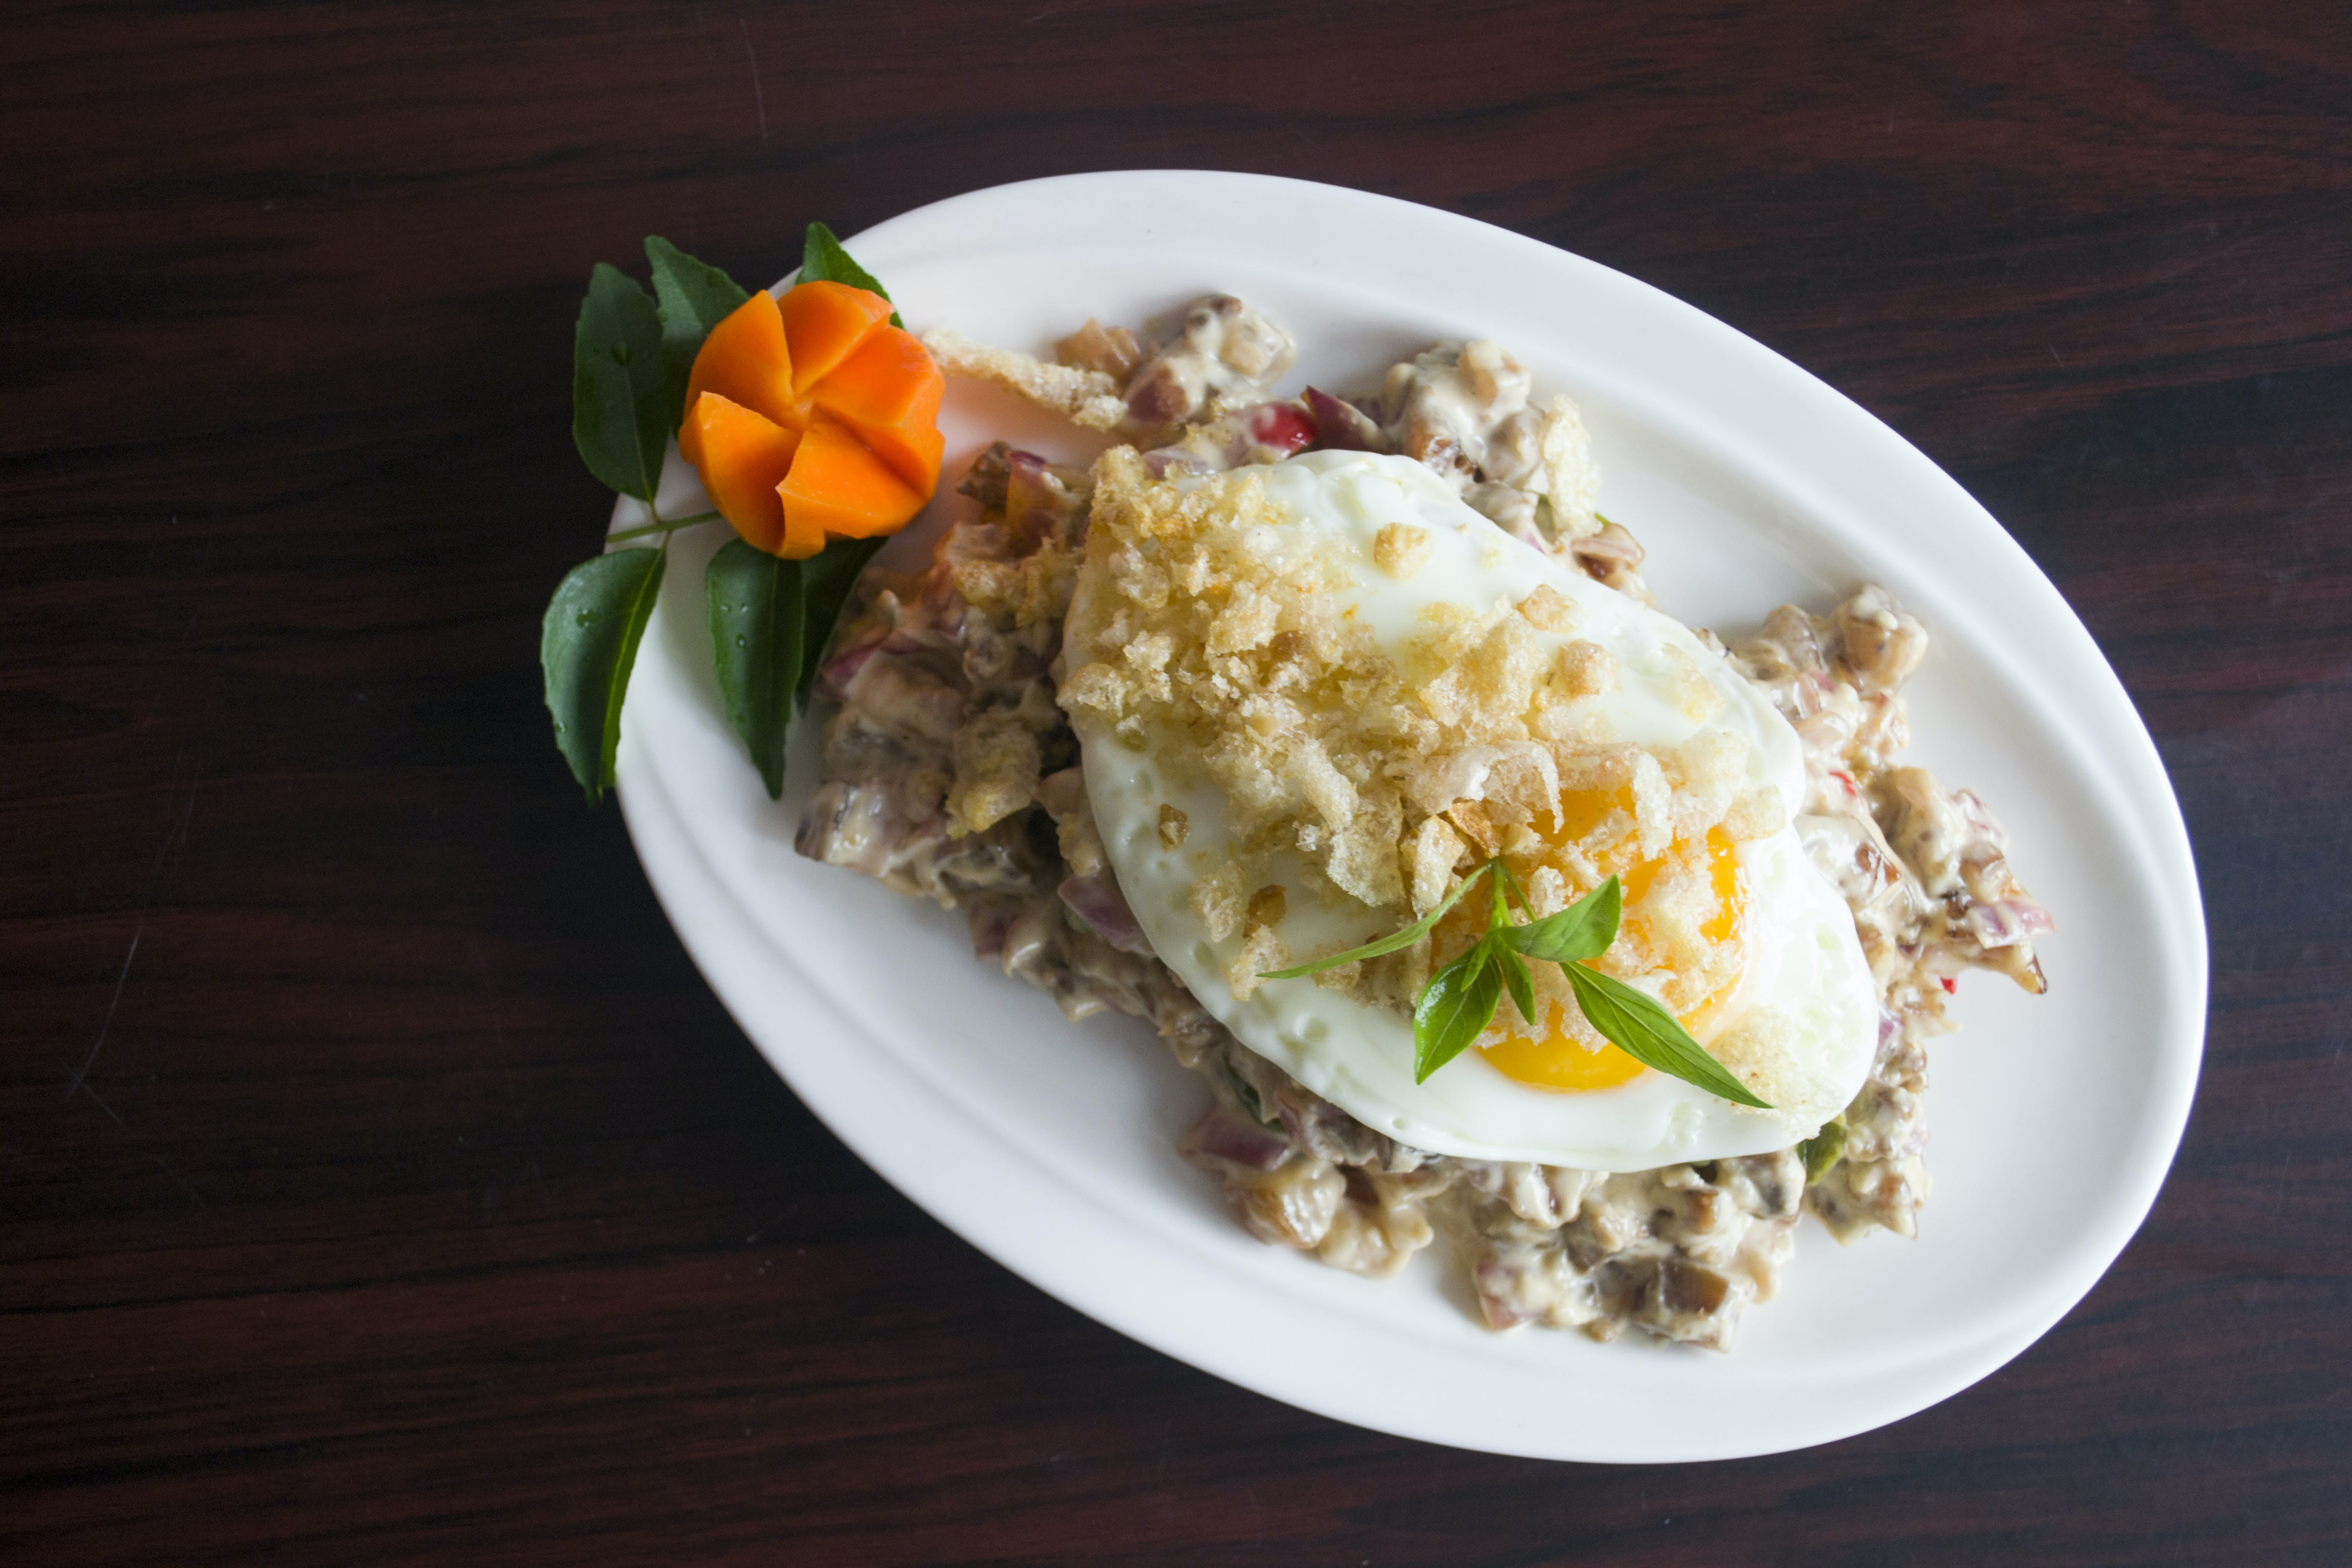 Serving of Marinated Meat With Sunny Side-up Egg and Slice of Carrot in Oval White Ceramic Plate